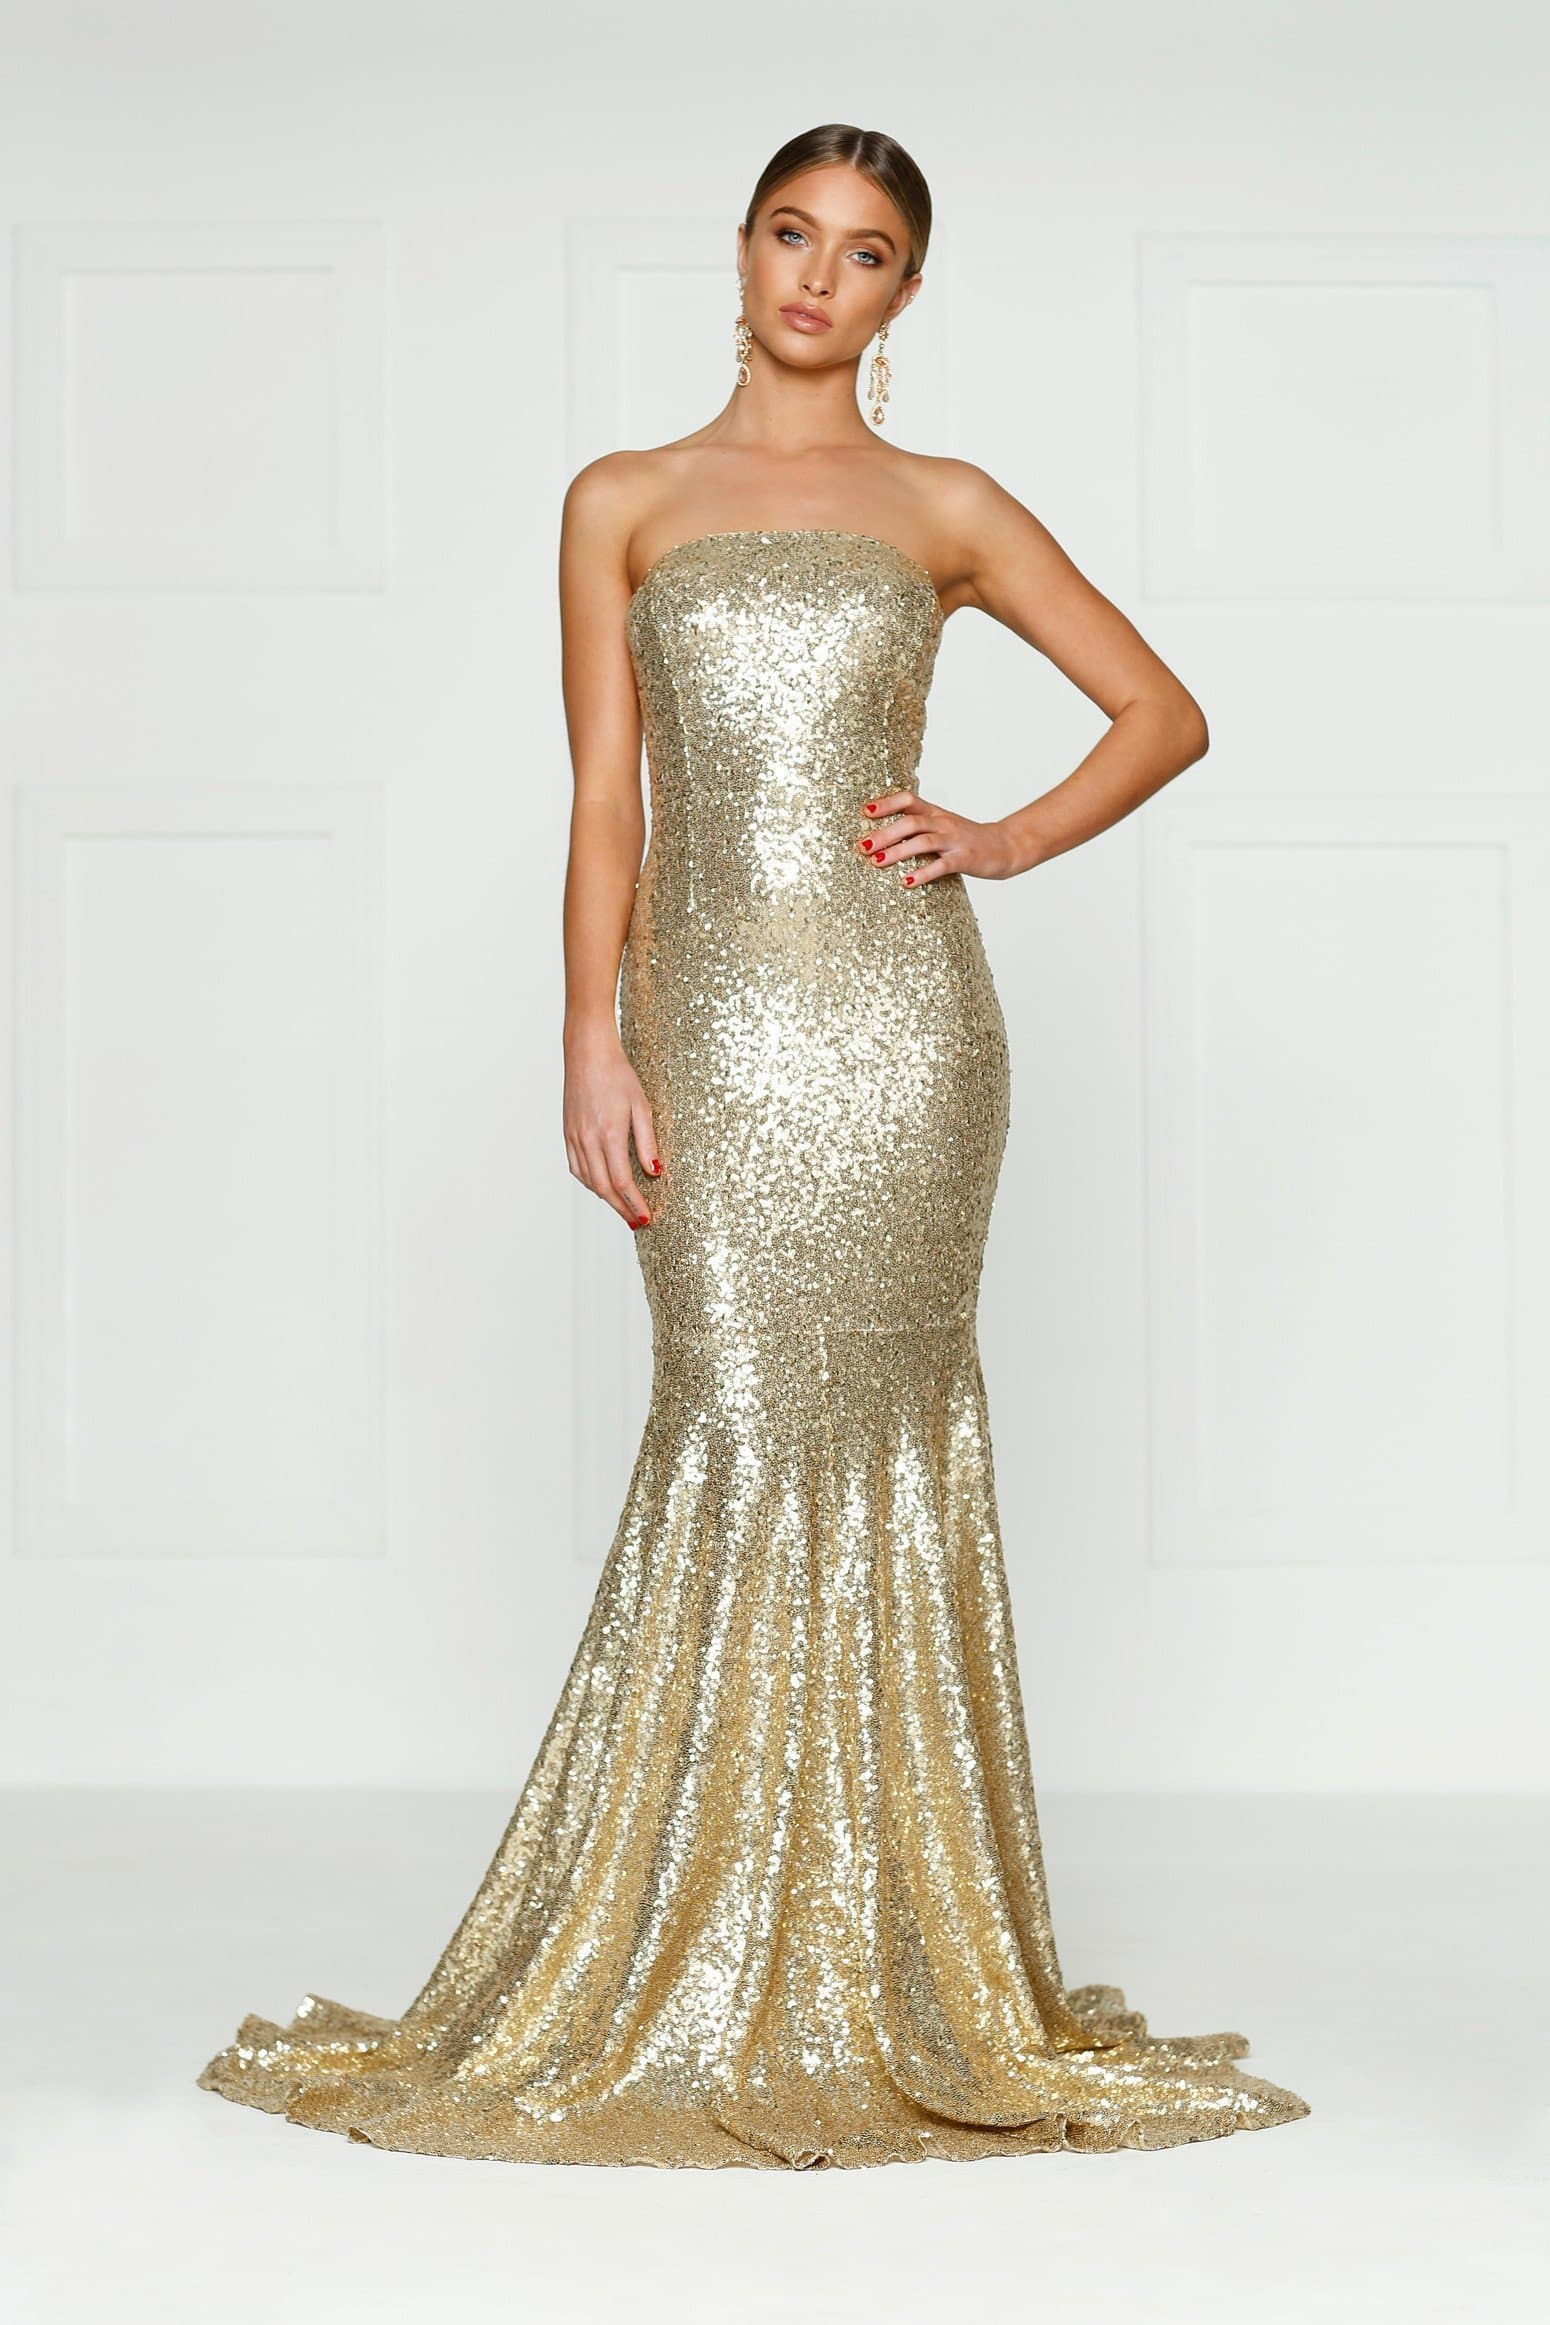 Clearance Sale on Dresses and Gowns at A&N Boutique – Page 2